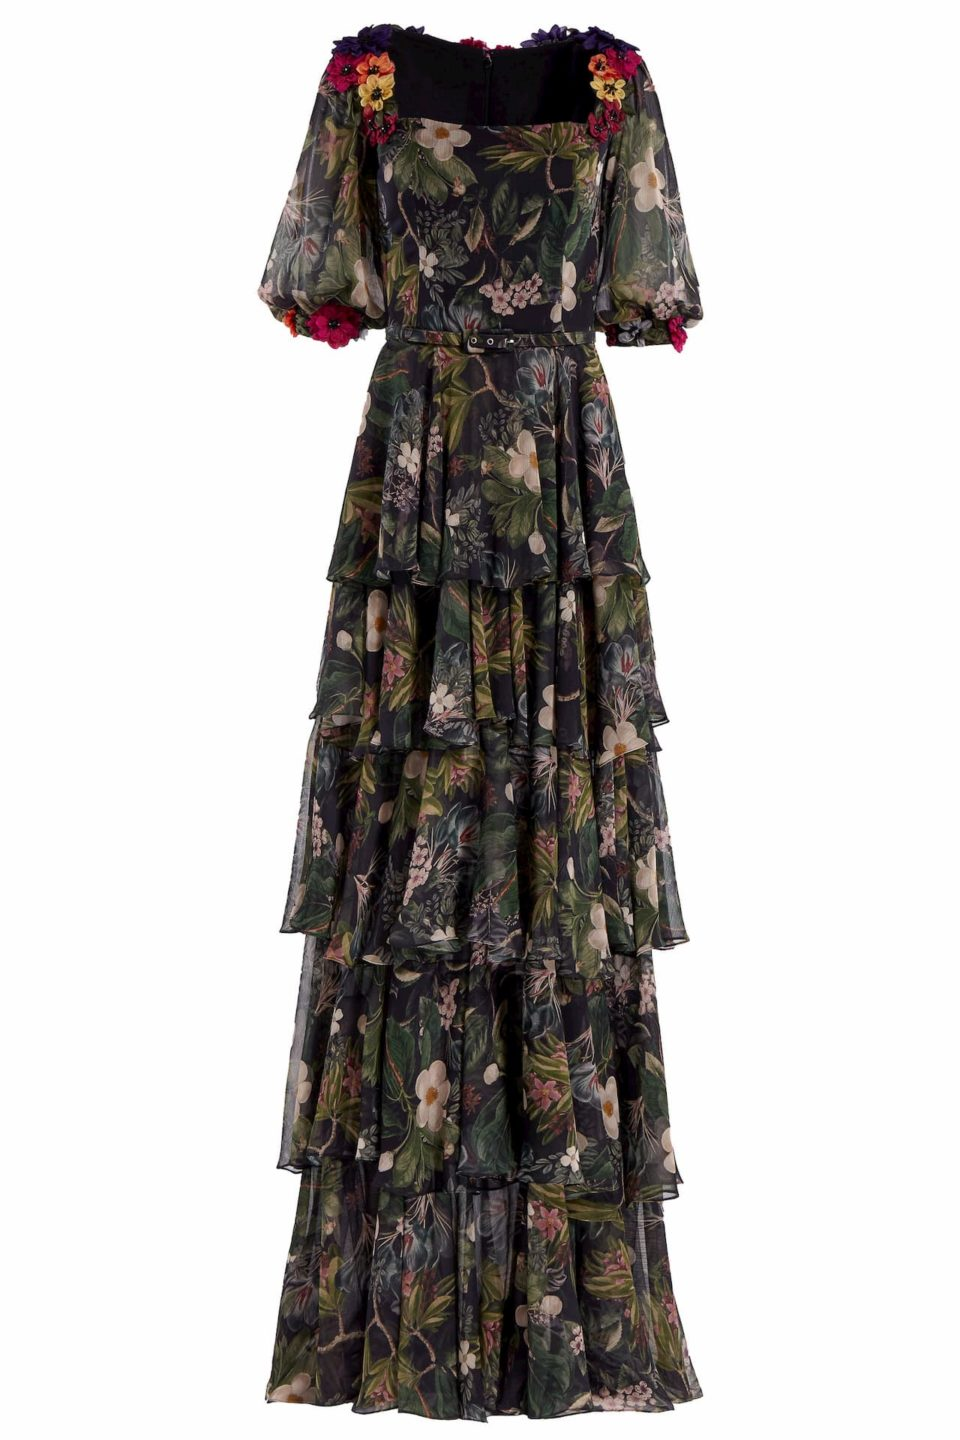 Minna PR2033 Black Floral-Printed Chiffon Layered Ruffle Gown